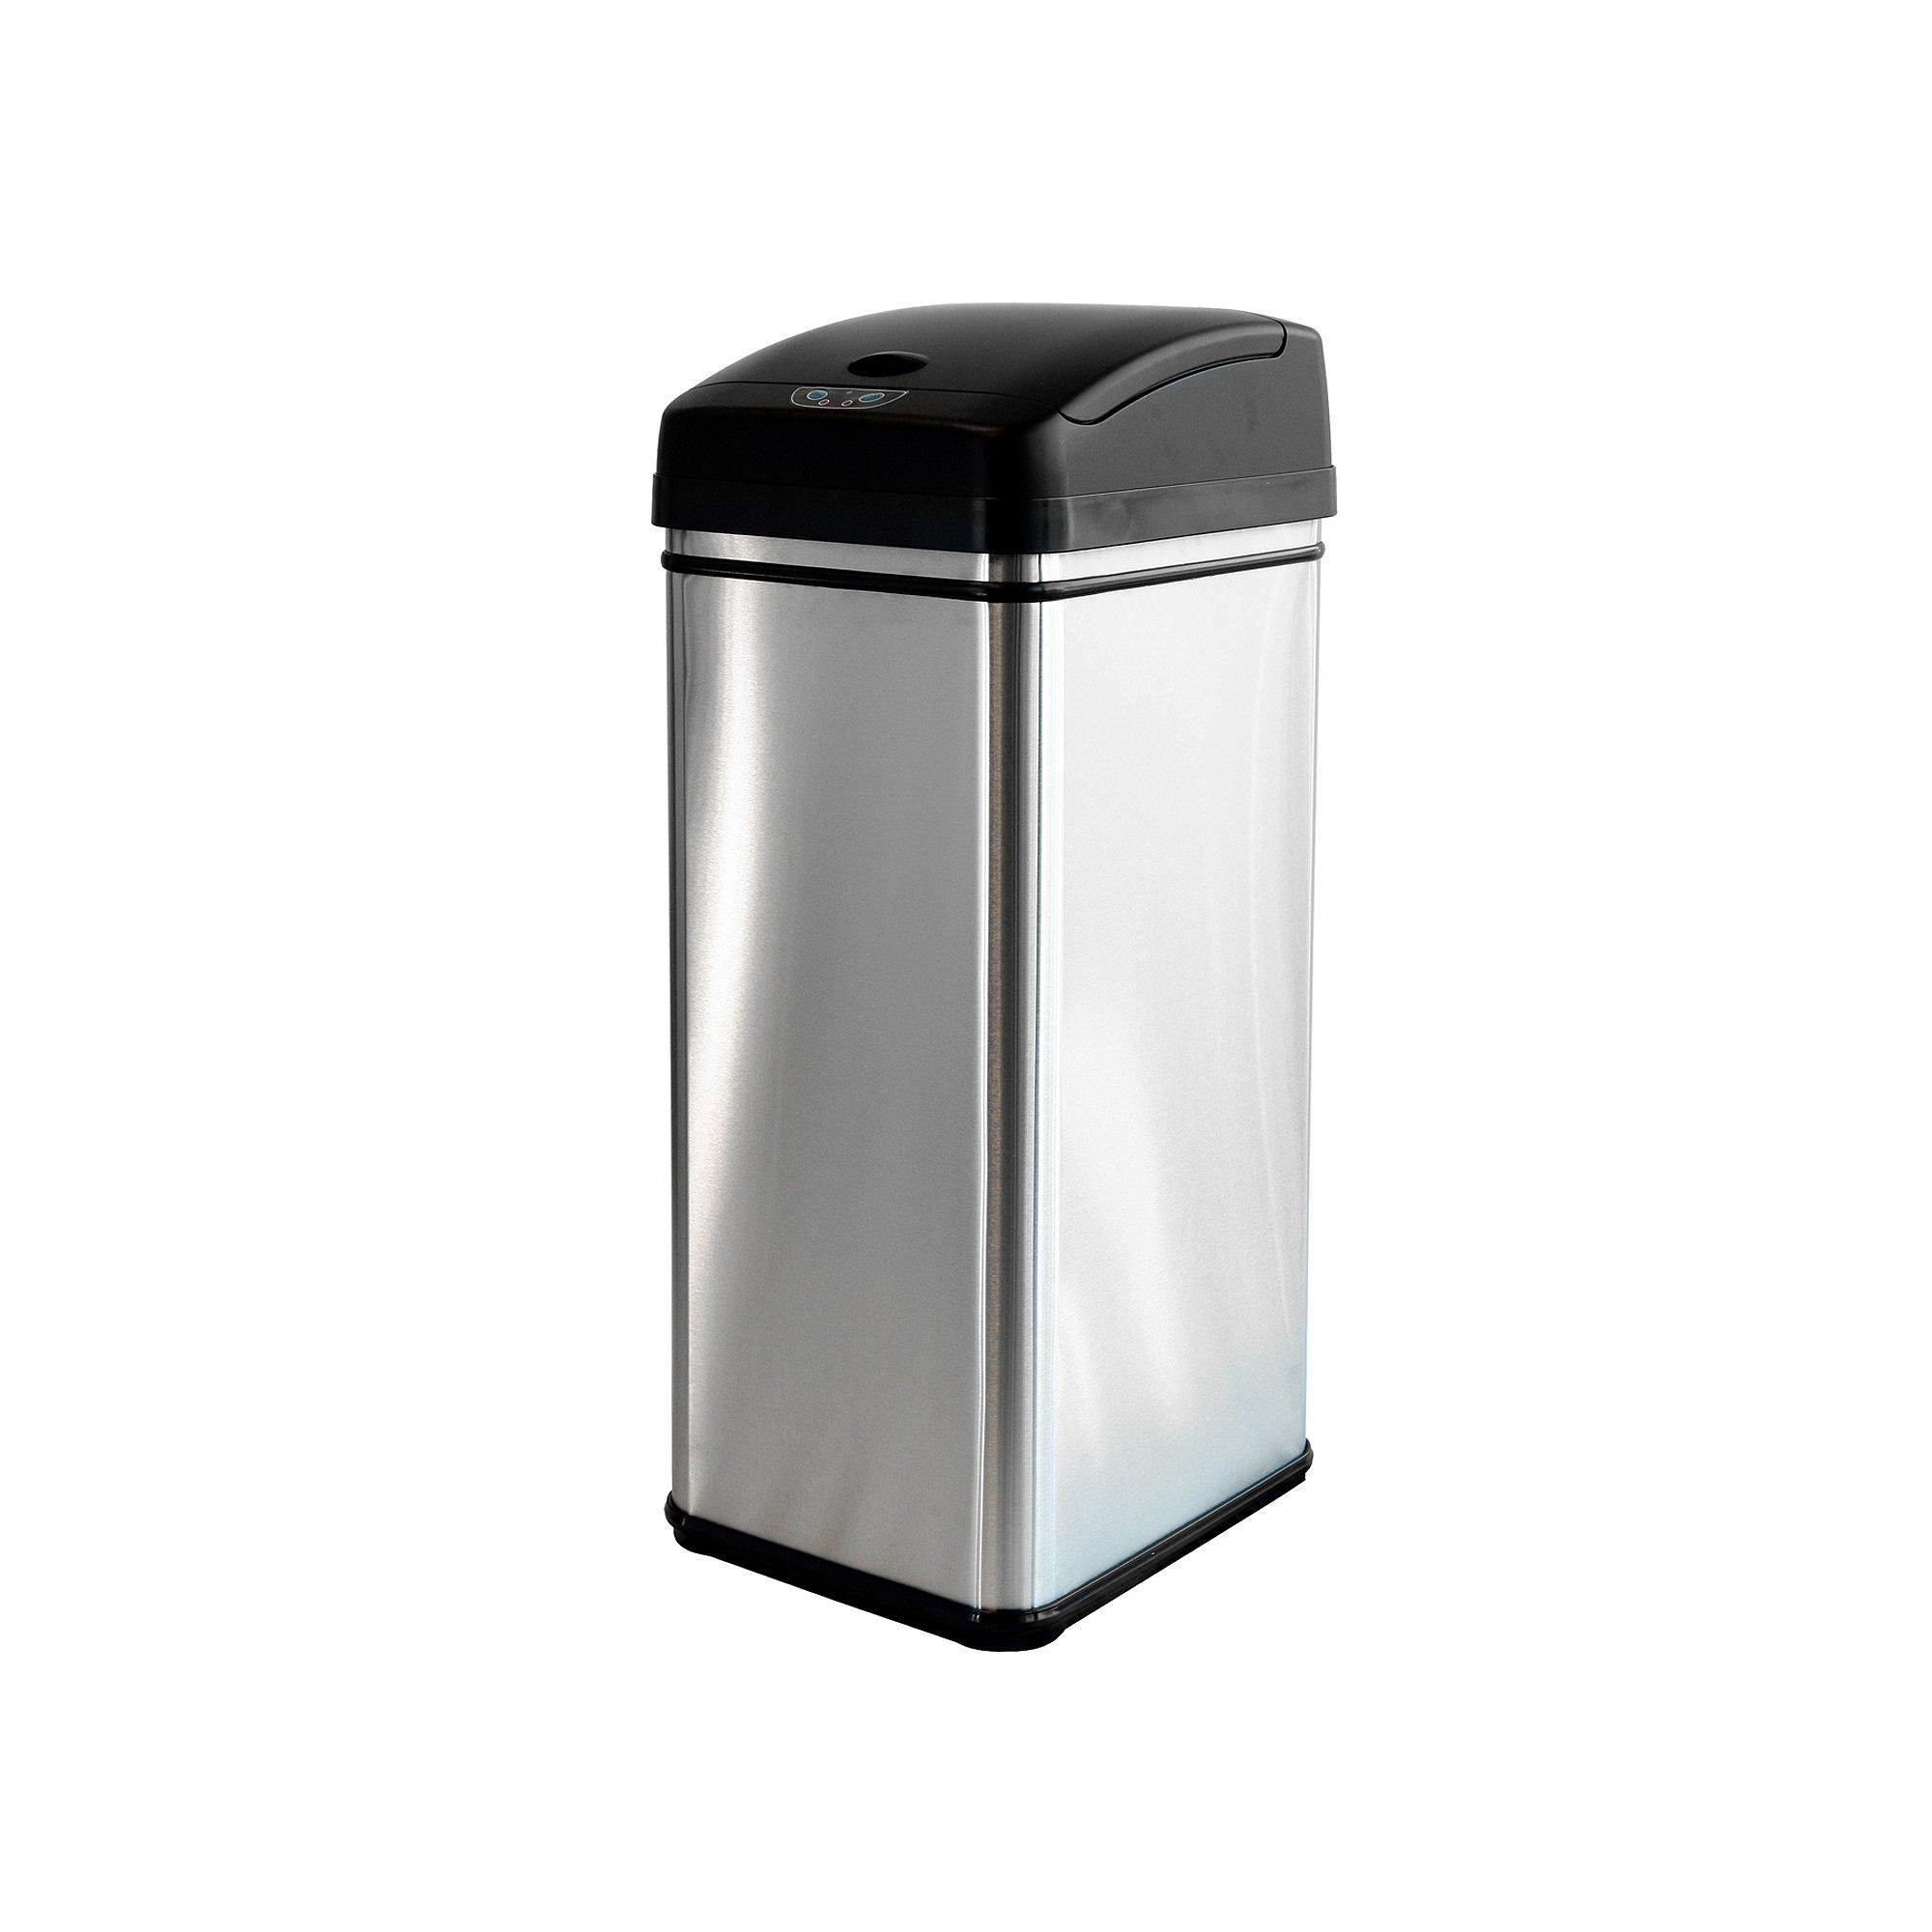 iTouchless Deodorizer 13-gallon Stainless Steel Touchless ...